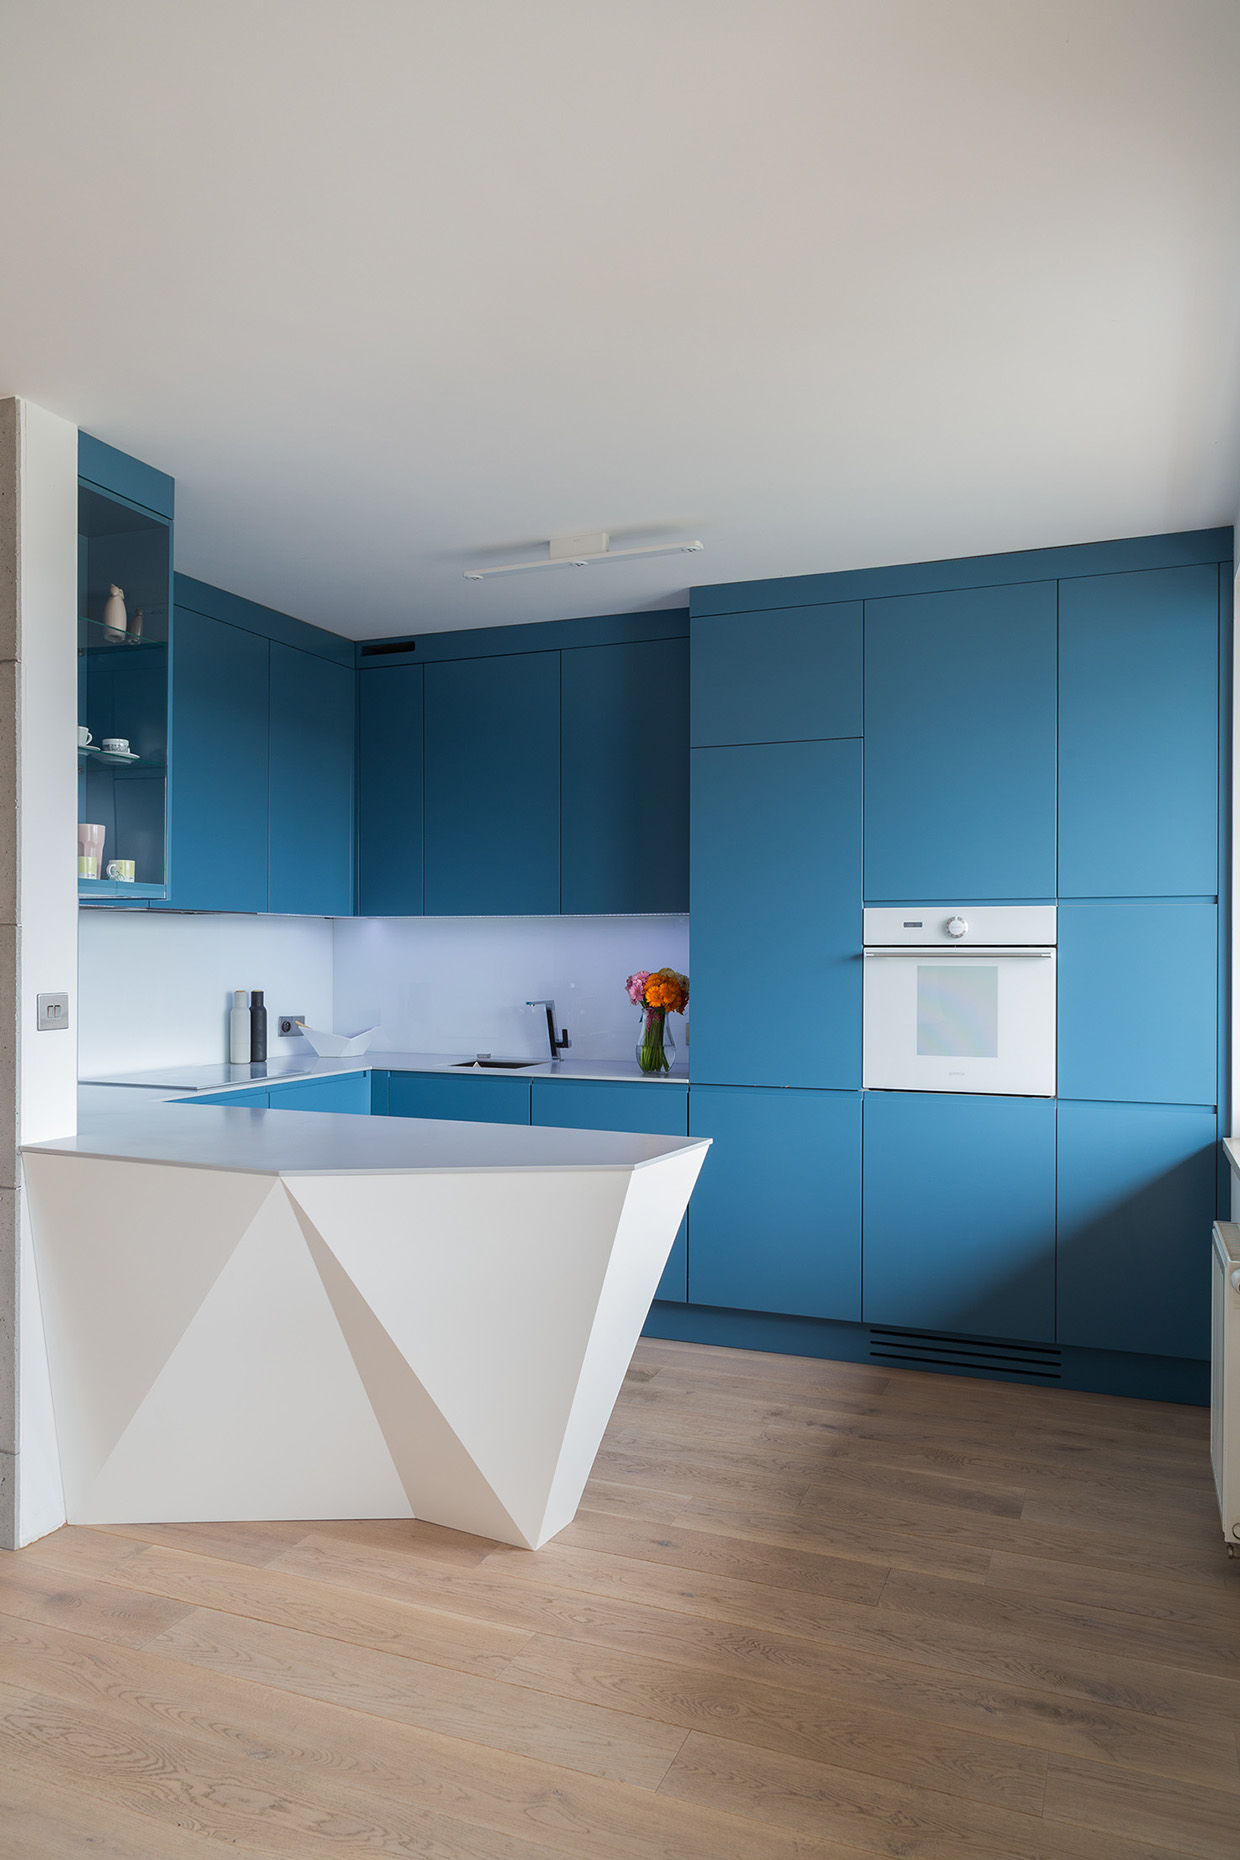 Blue Cabinetry - 2 creative apartments featuring whimsical art